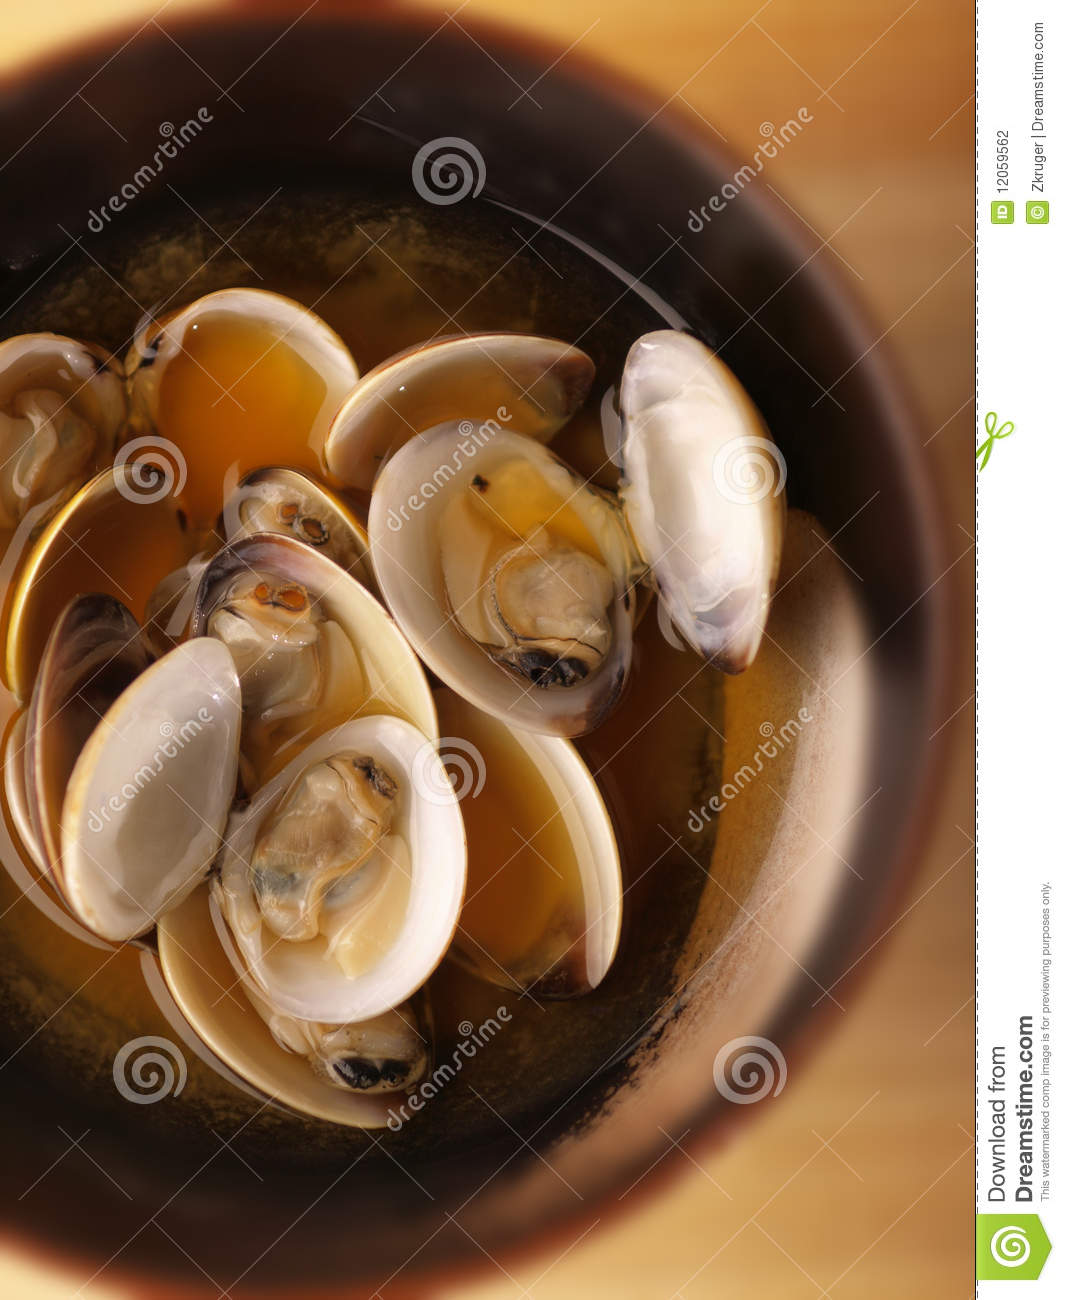 What do asian clams eat